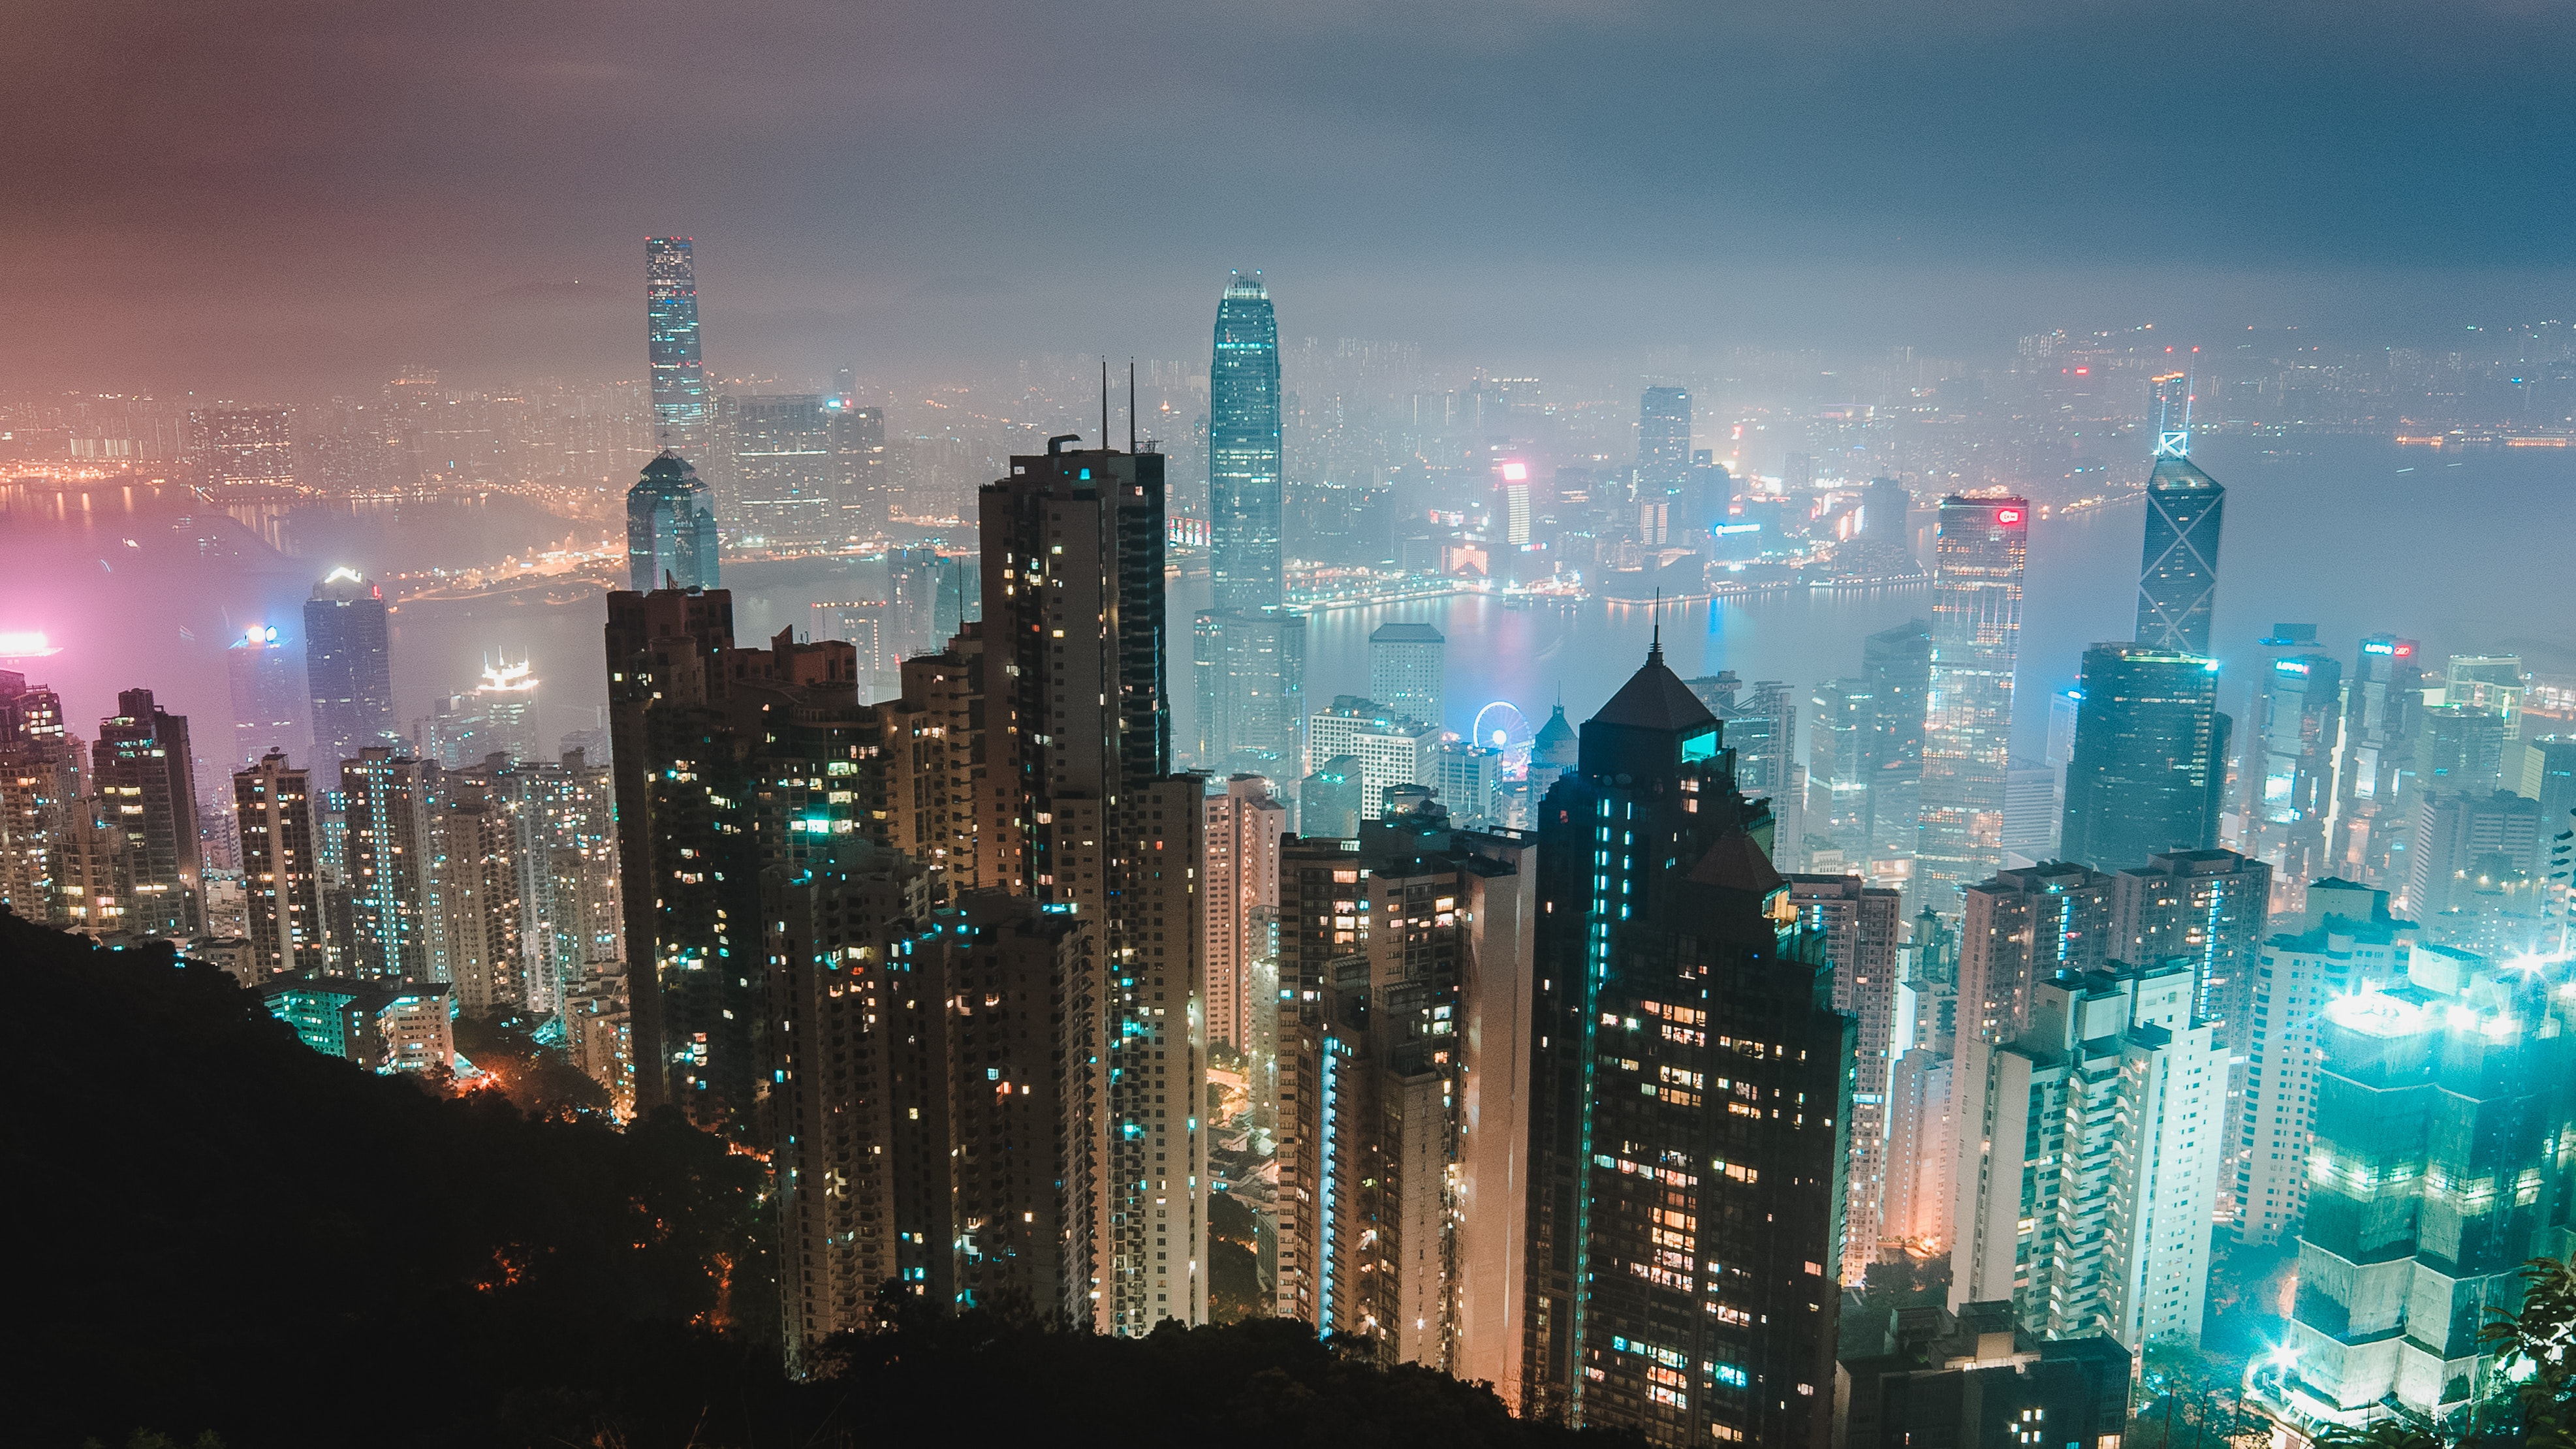 As IoT cybersecurity vulnerabilities grow in number, the promise of connected cities may be at risk.